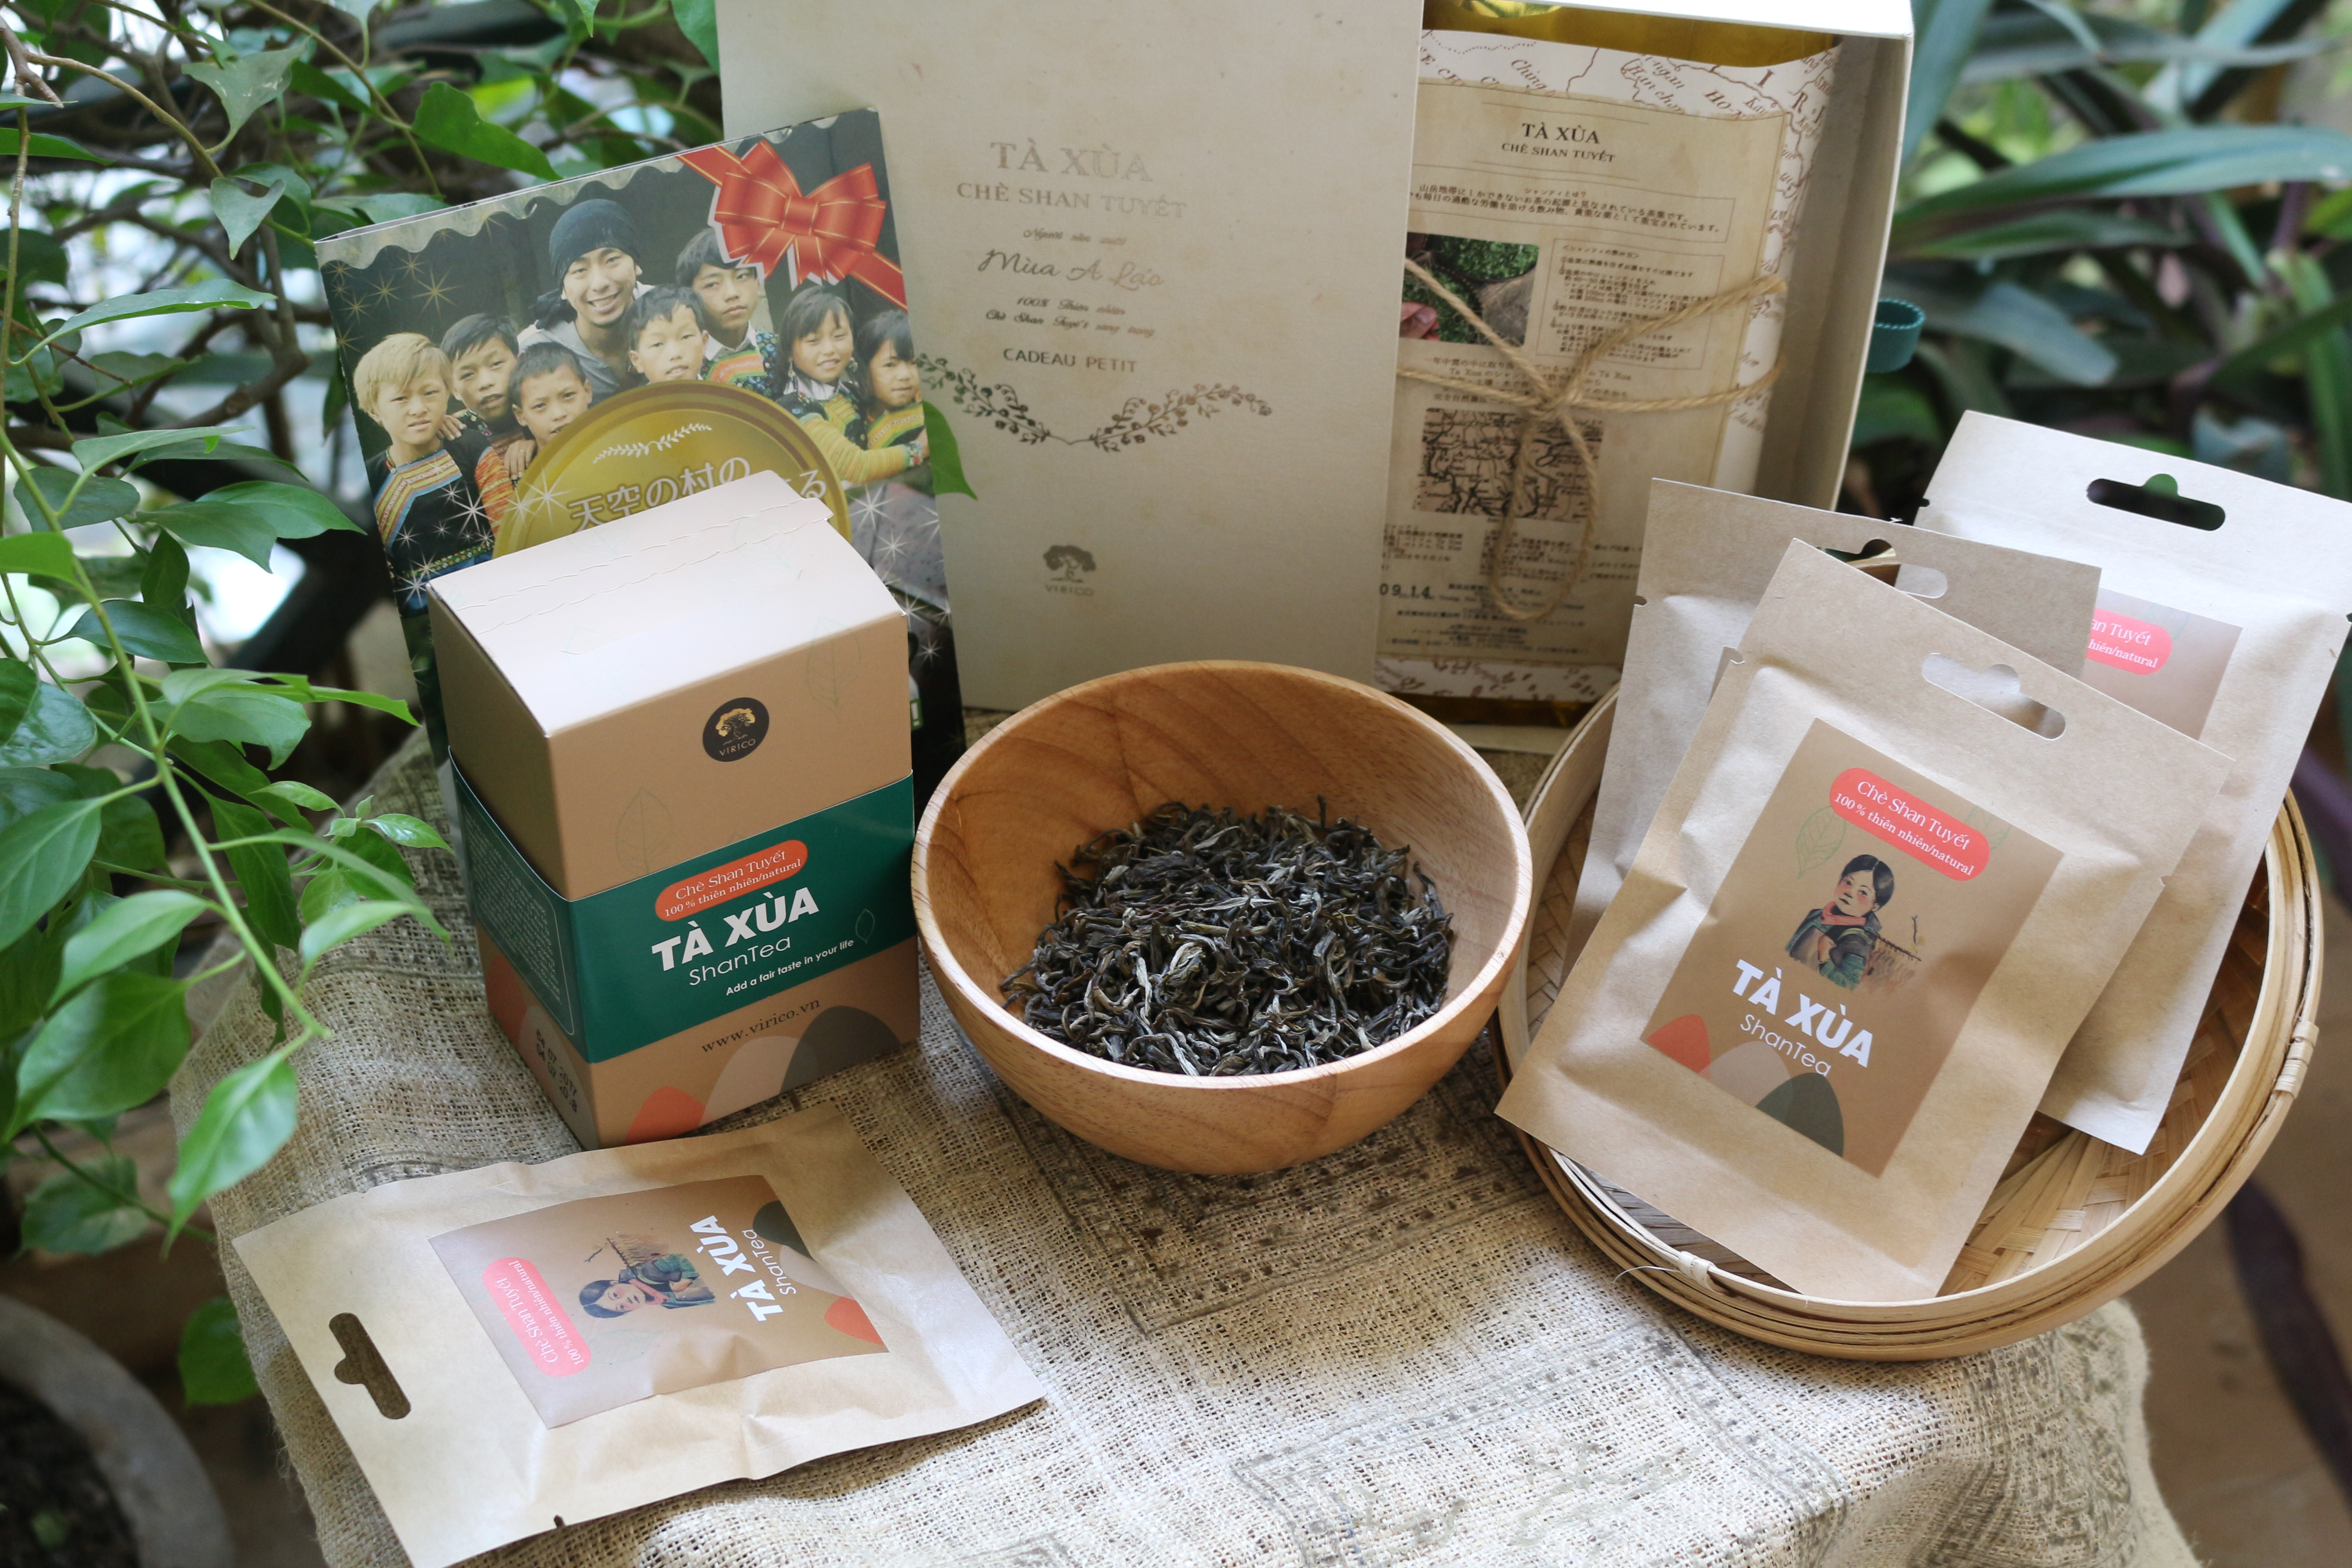 Ta Xua Shan tea is going to be participated in the World Green Tea Contest